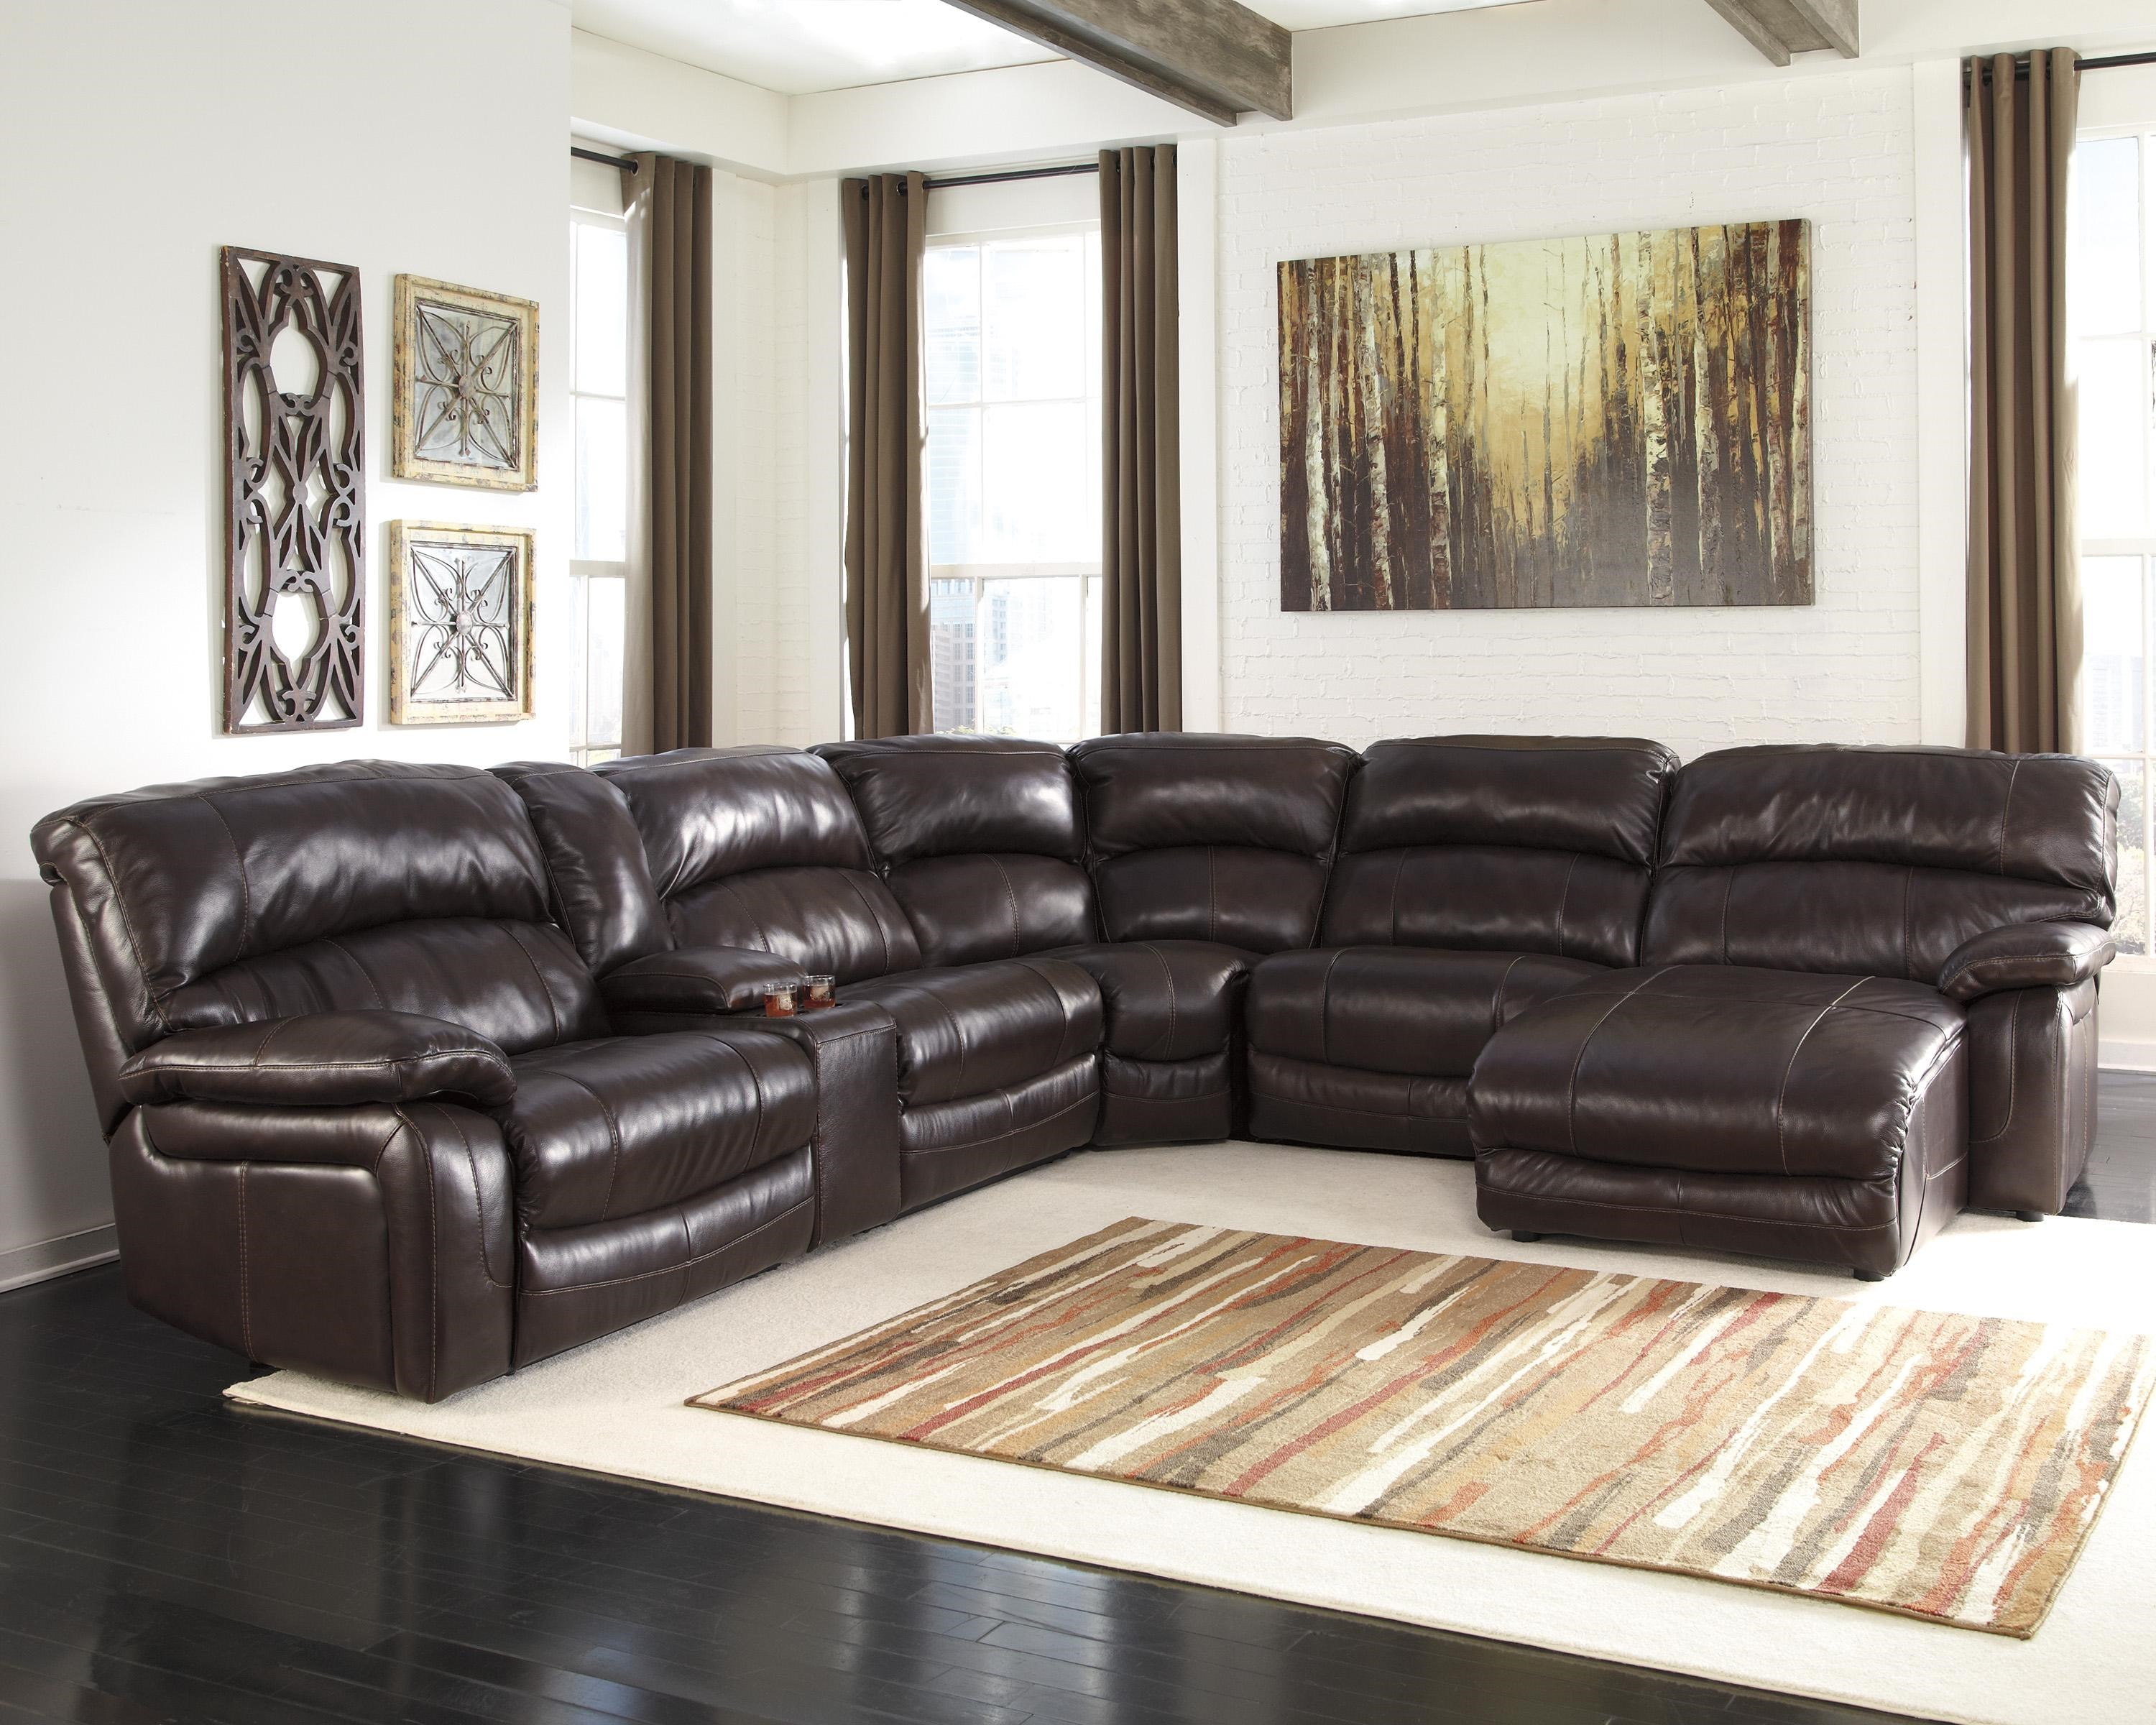 Power Reclining Sectional With Right Press Back Chaise By: Signature Design By Ashley Damacio